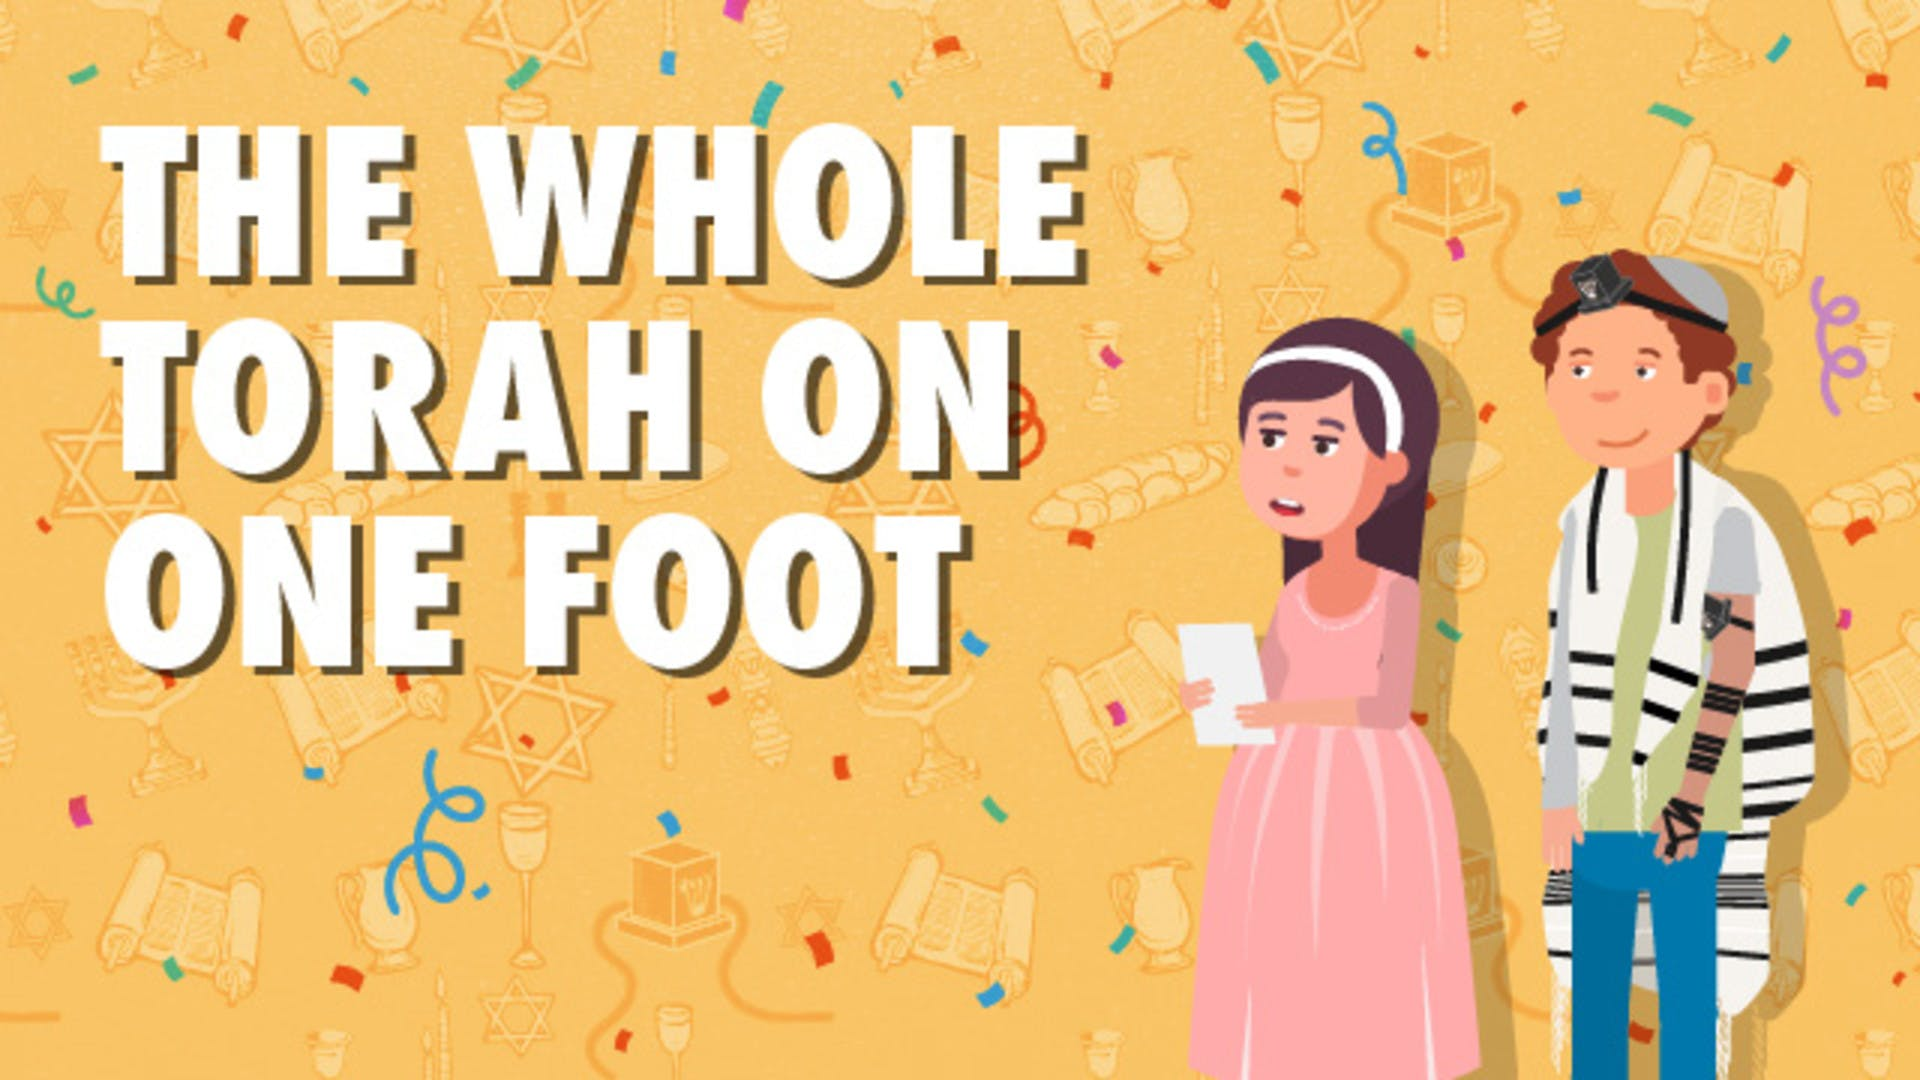 The Whole Torah on One Foot